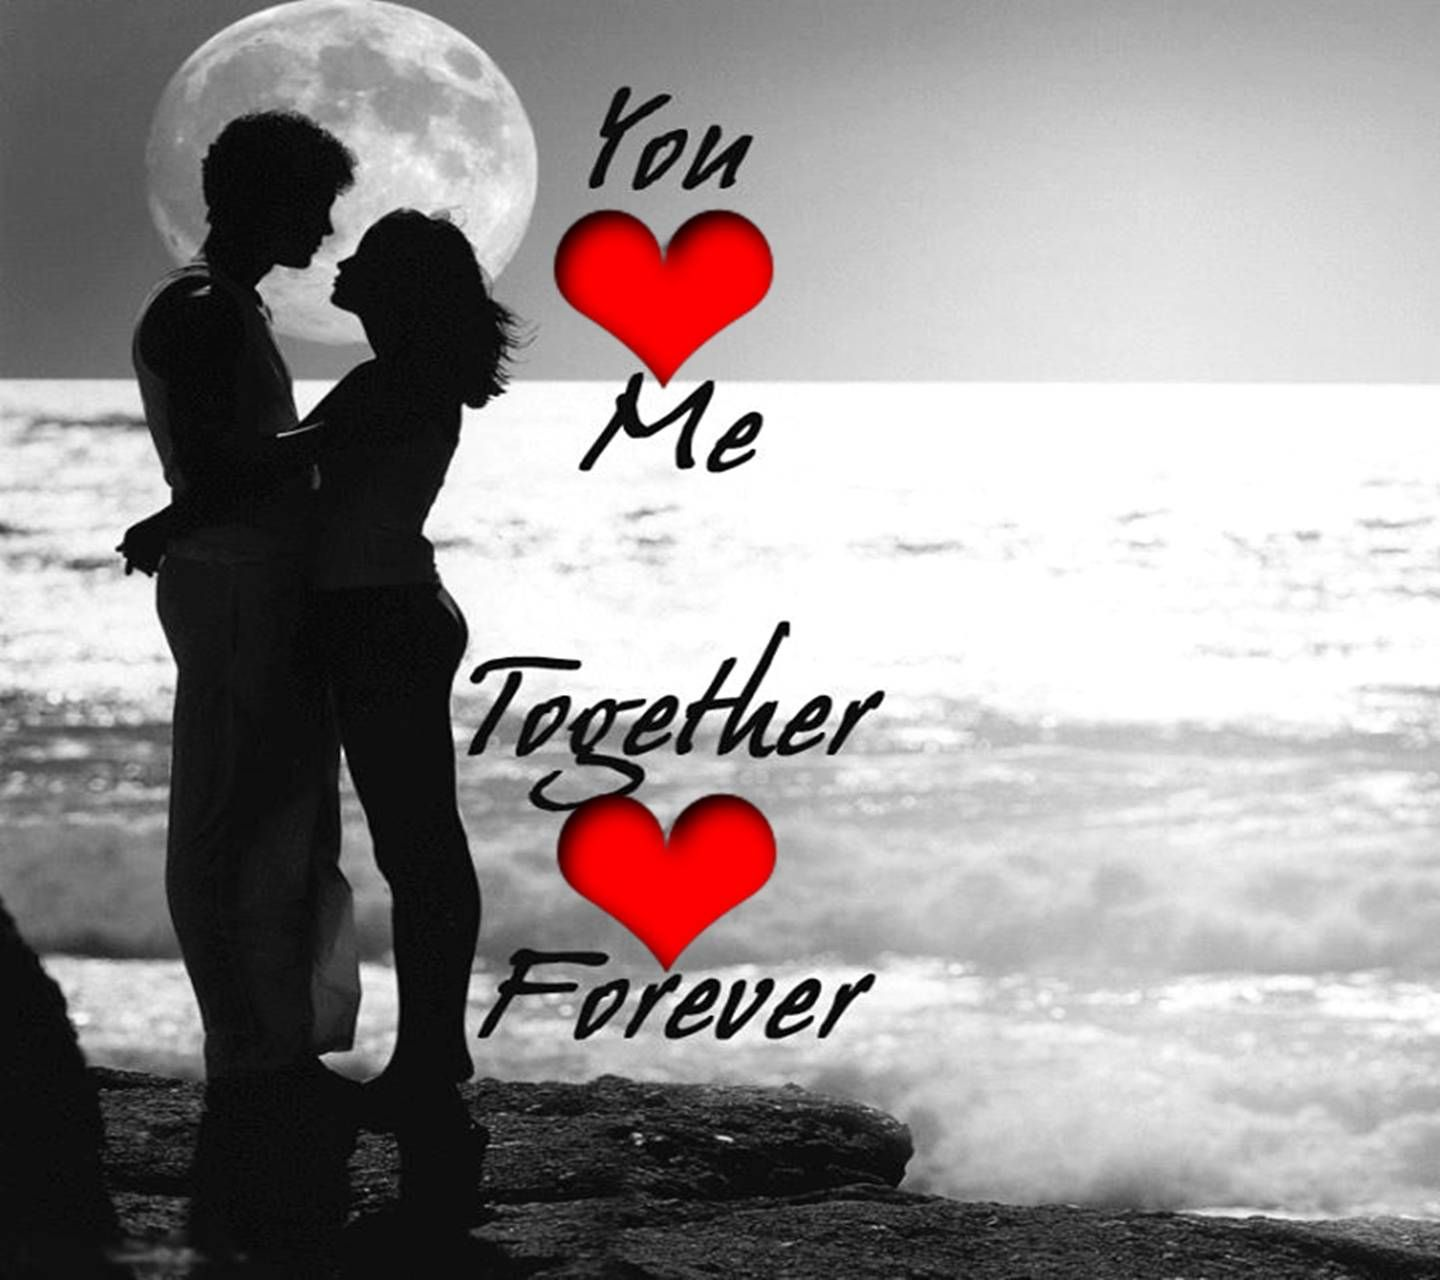 Download Together Forever Wallpaper By Perfumevanilla 9e Free On Zedge Now Browse Millio In 2021 I Love You Pictures Love You Images Love Quotes For Him Romantic